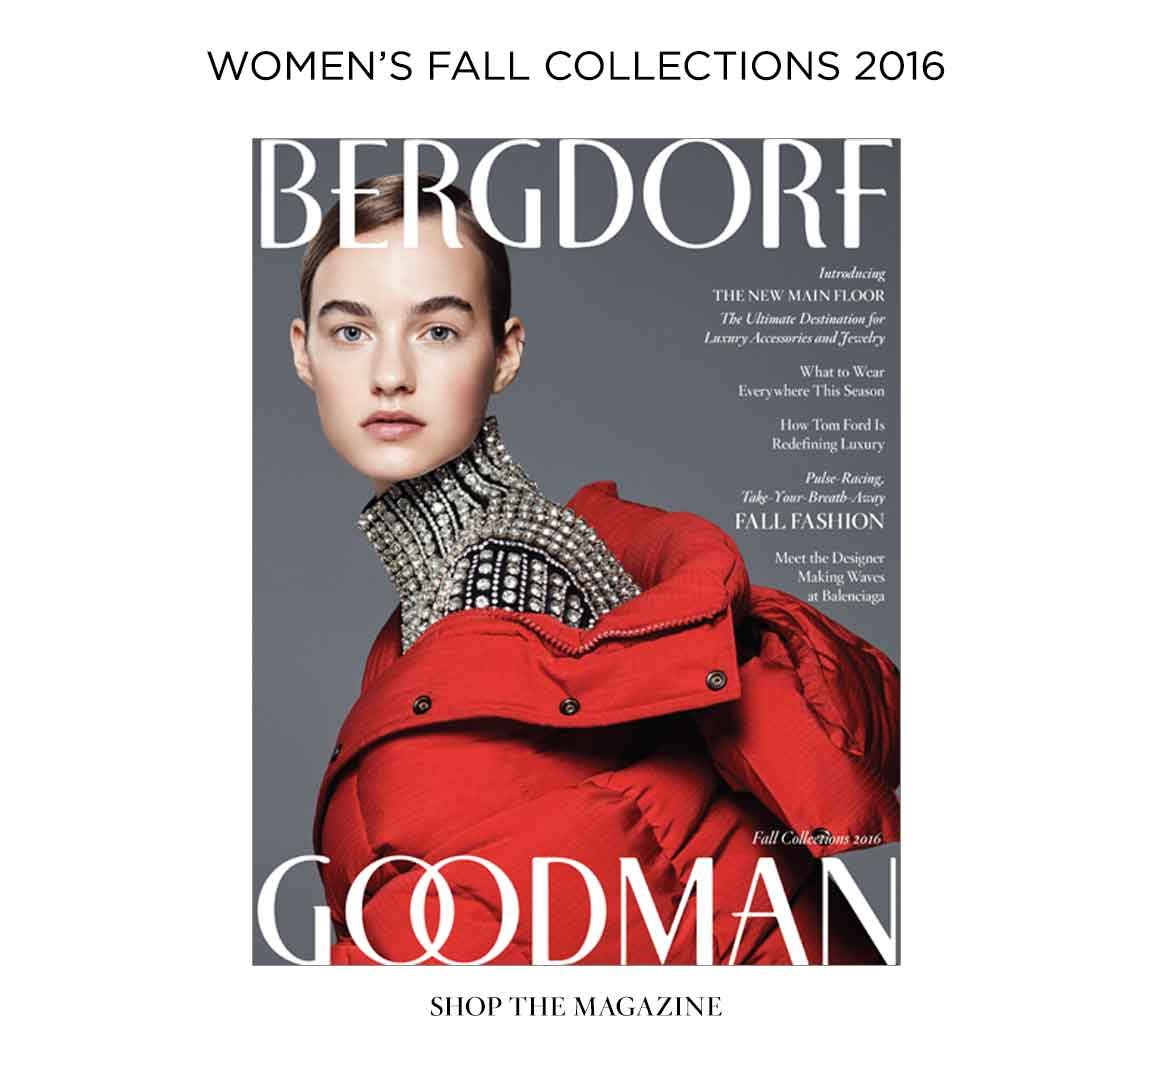 View the Women's Fall Collections Book